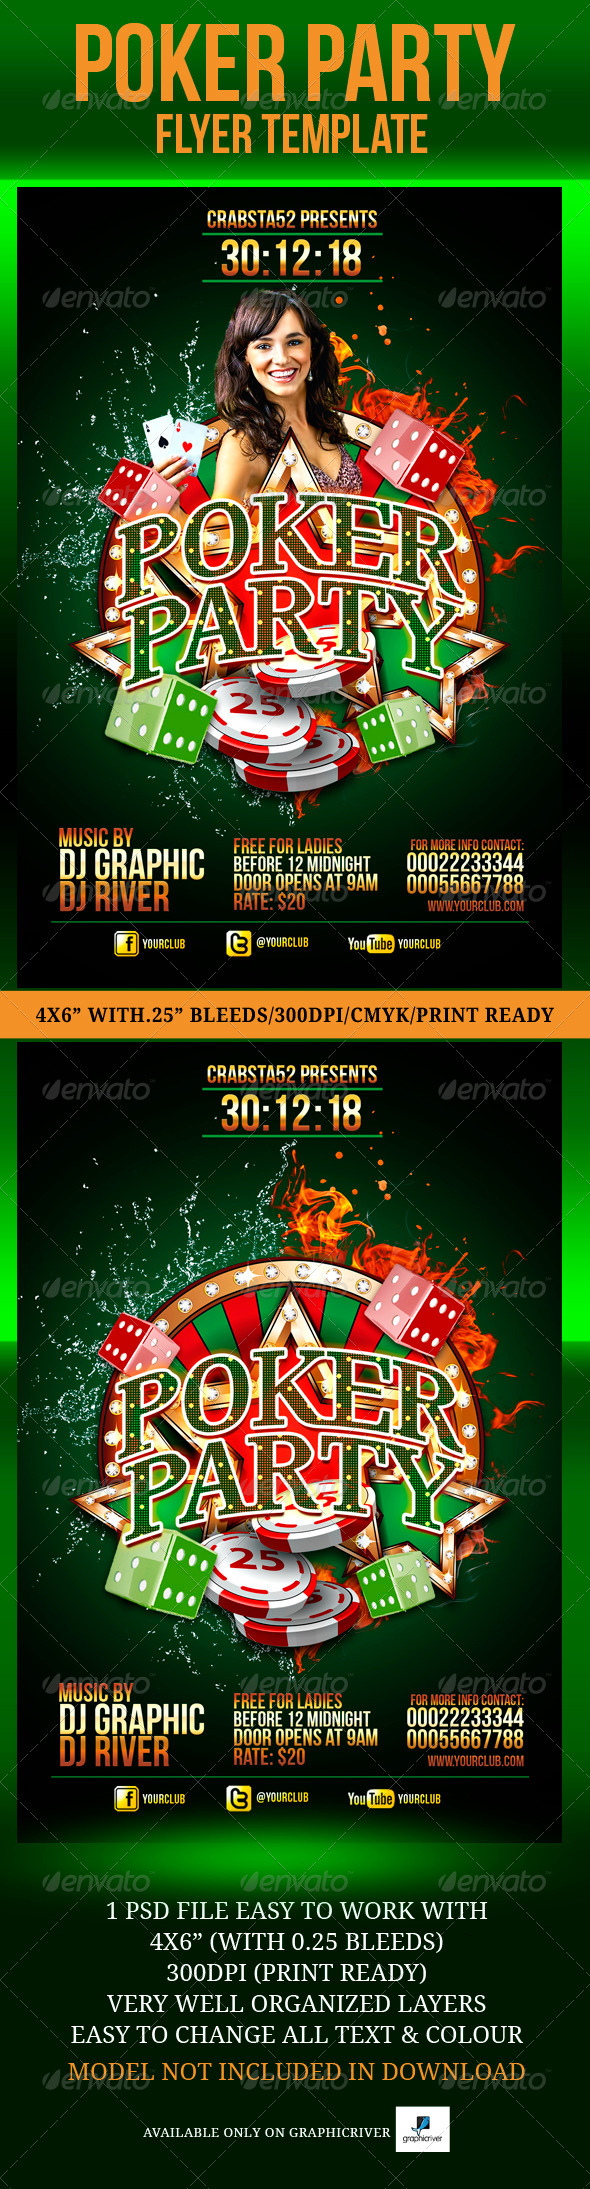 Poker Party Flyer Template - Flyers Print Templates